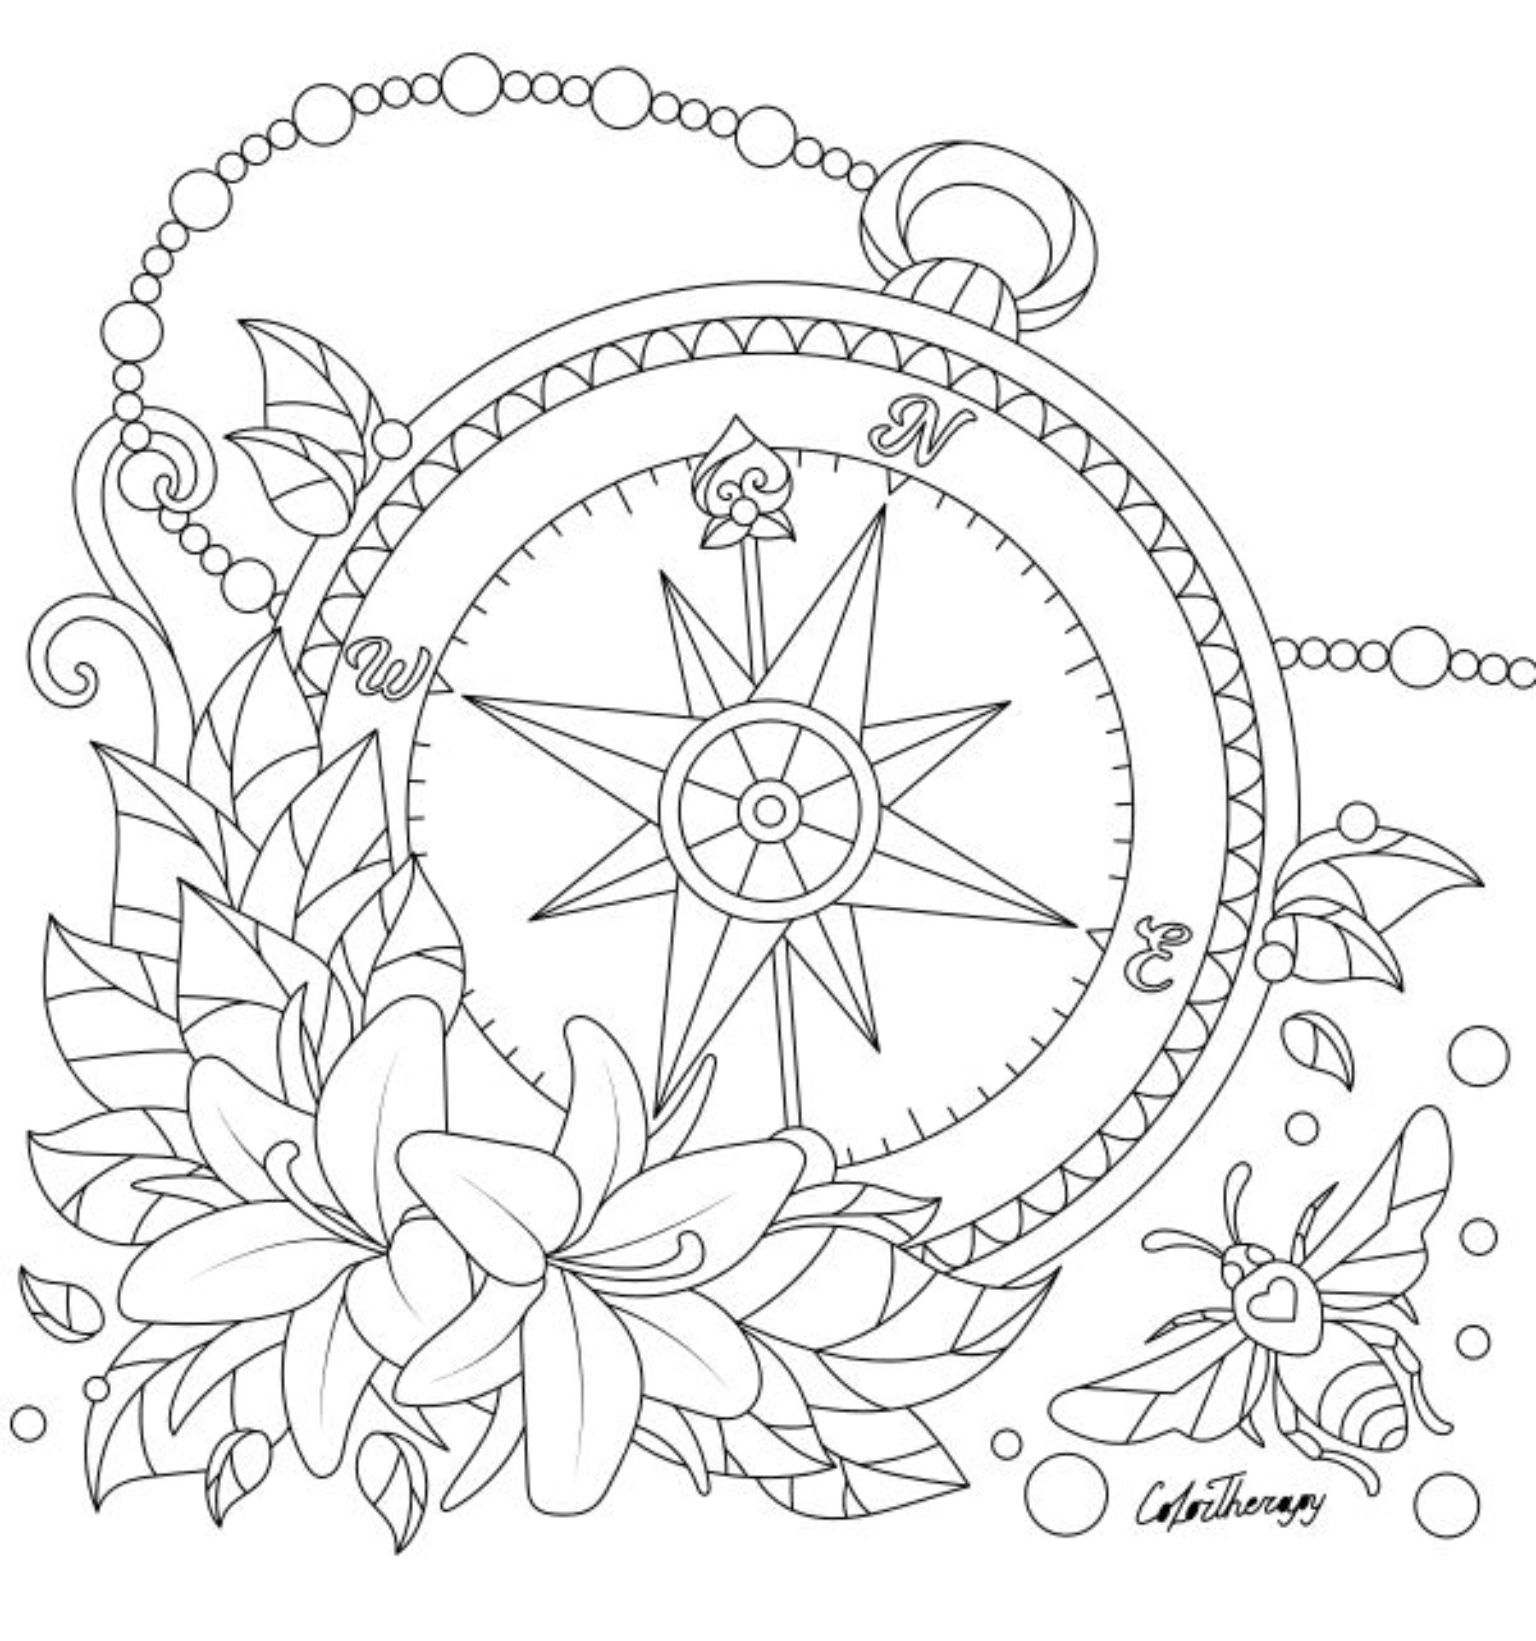 Compass Coloring Page Pattern Coloring Pages Coloring Pages